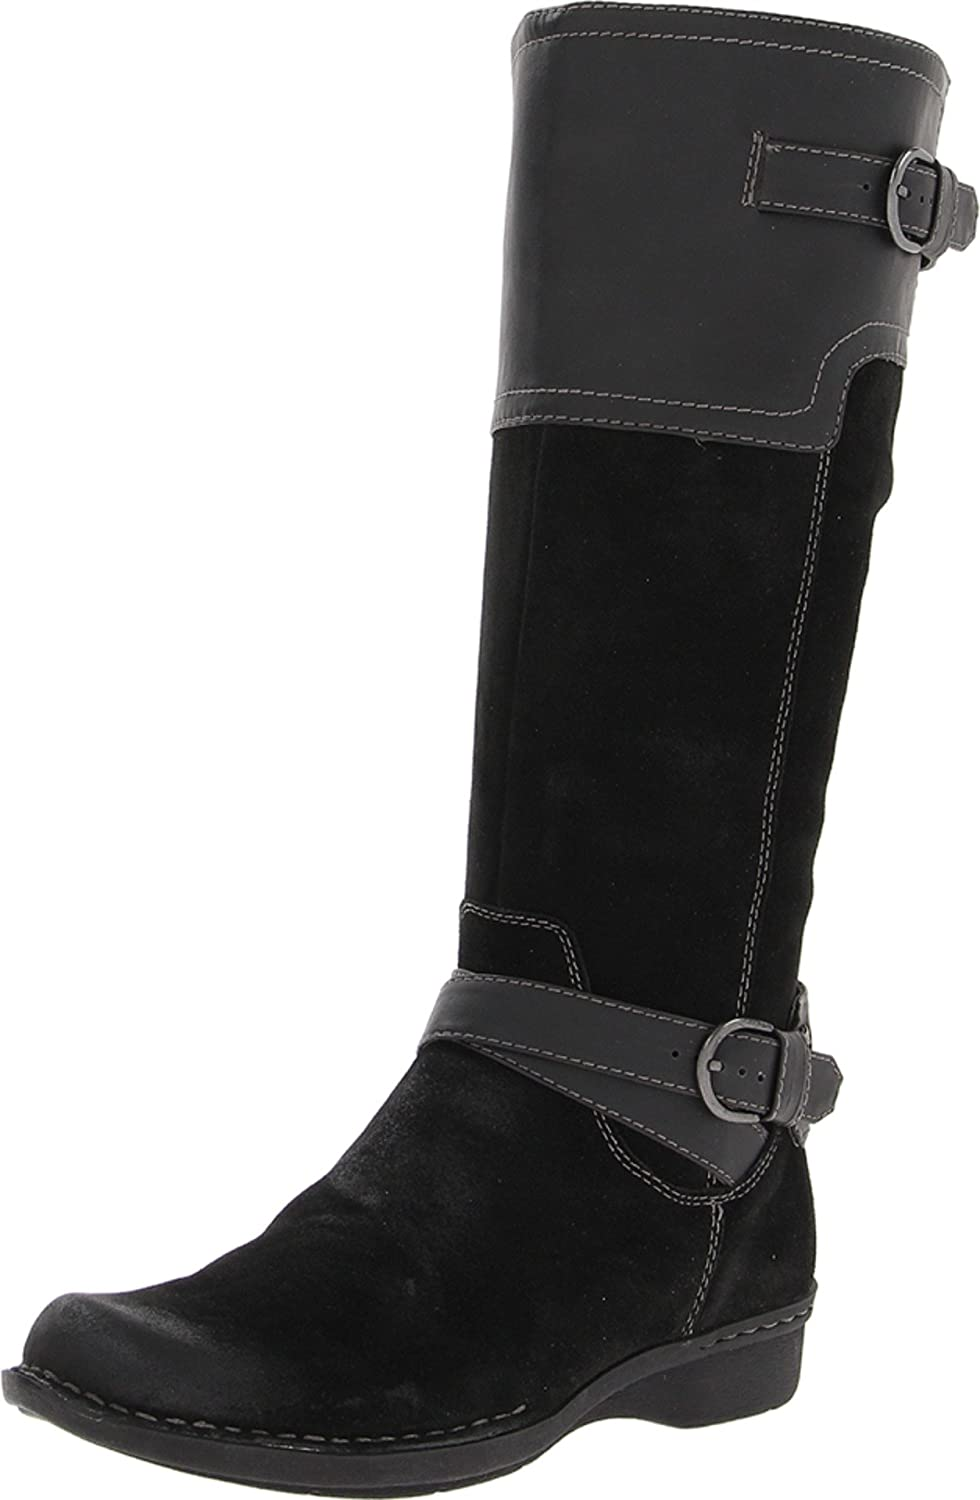 Clarks Whistle Woven Black Boots 5 ☆ very popular Tall Ladies Memphis Mall